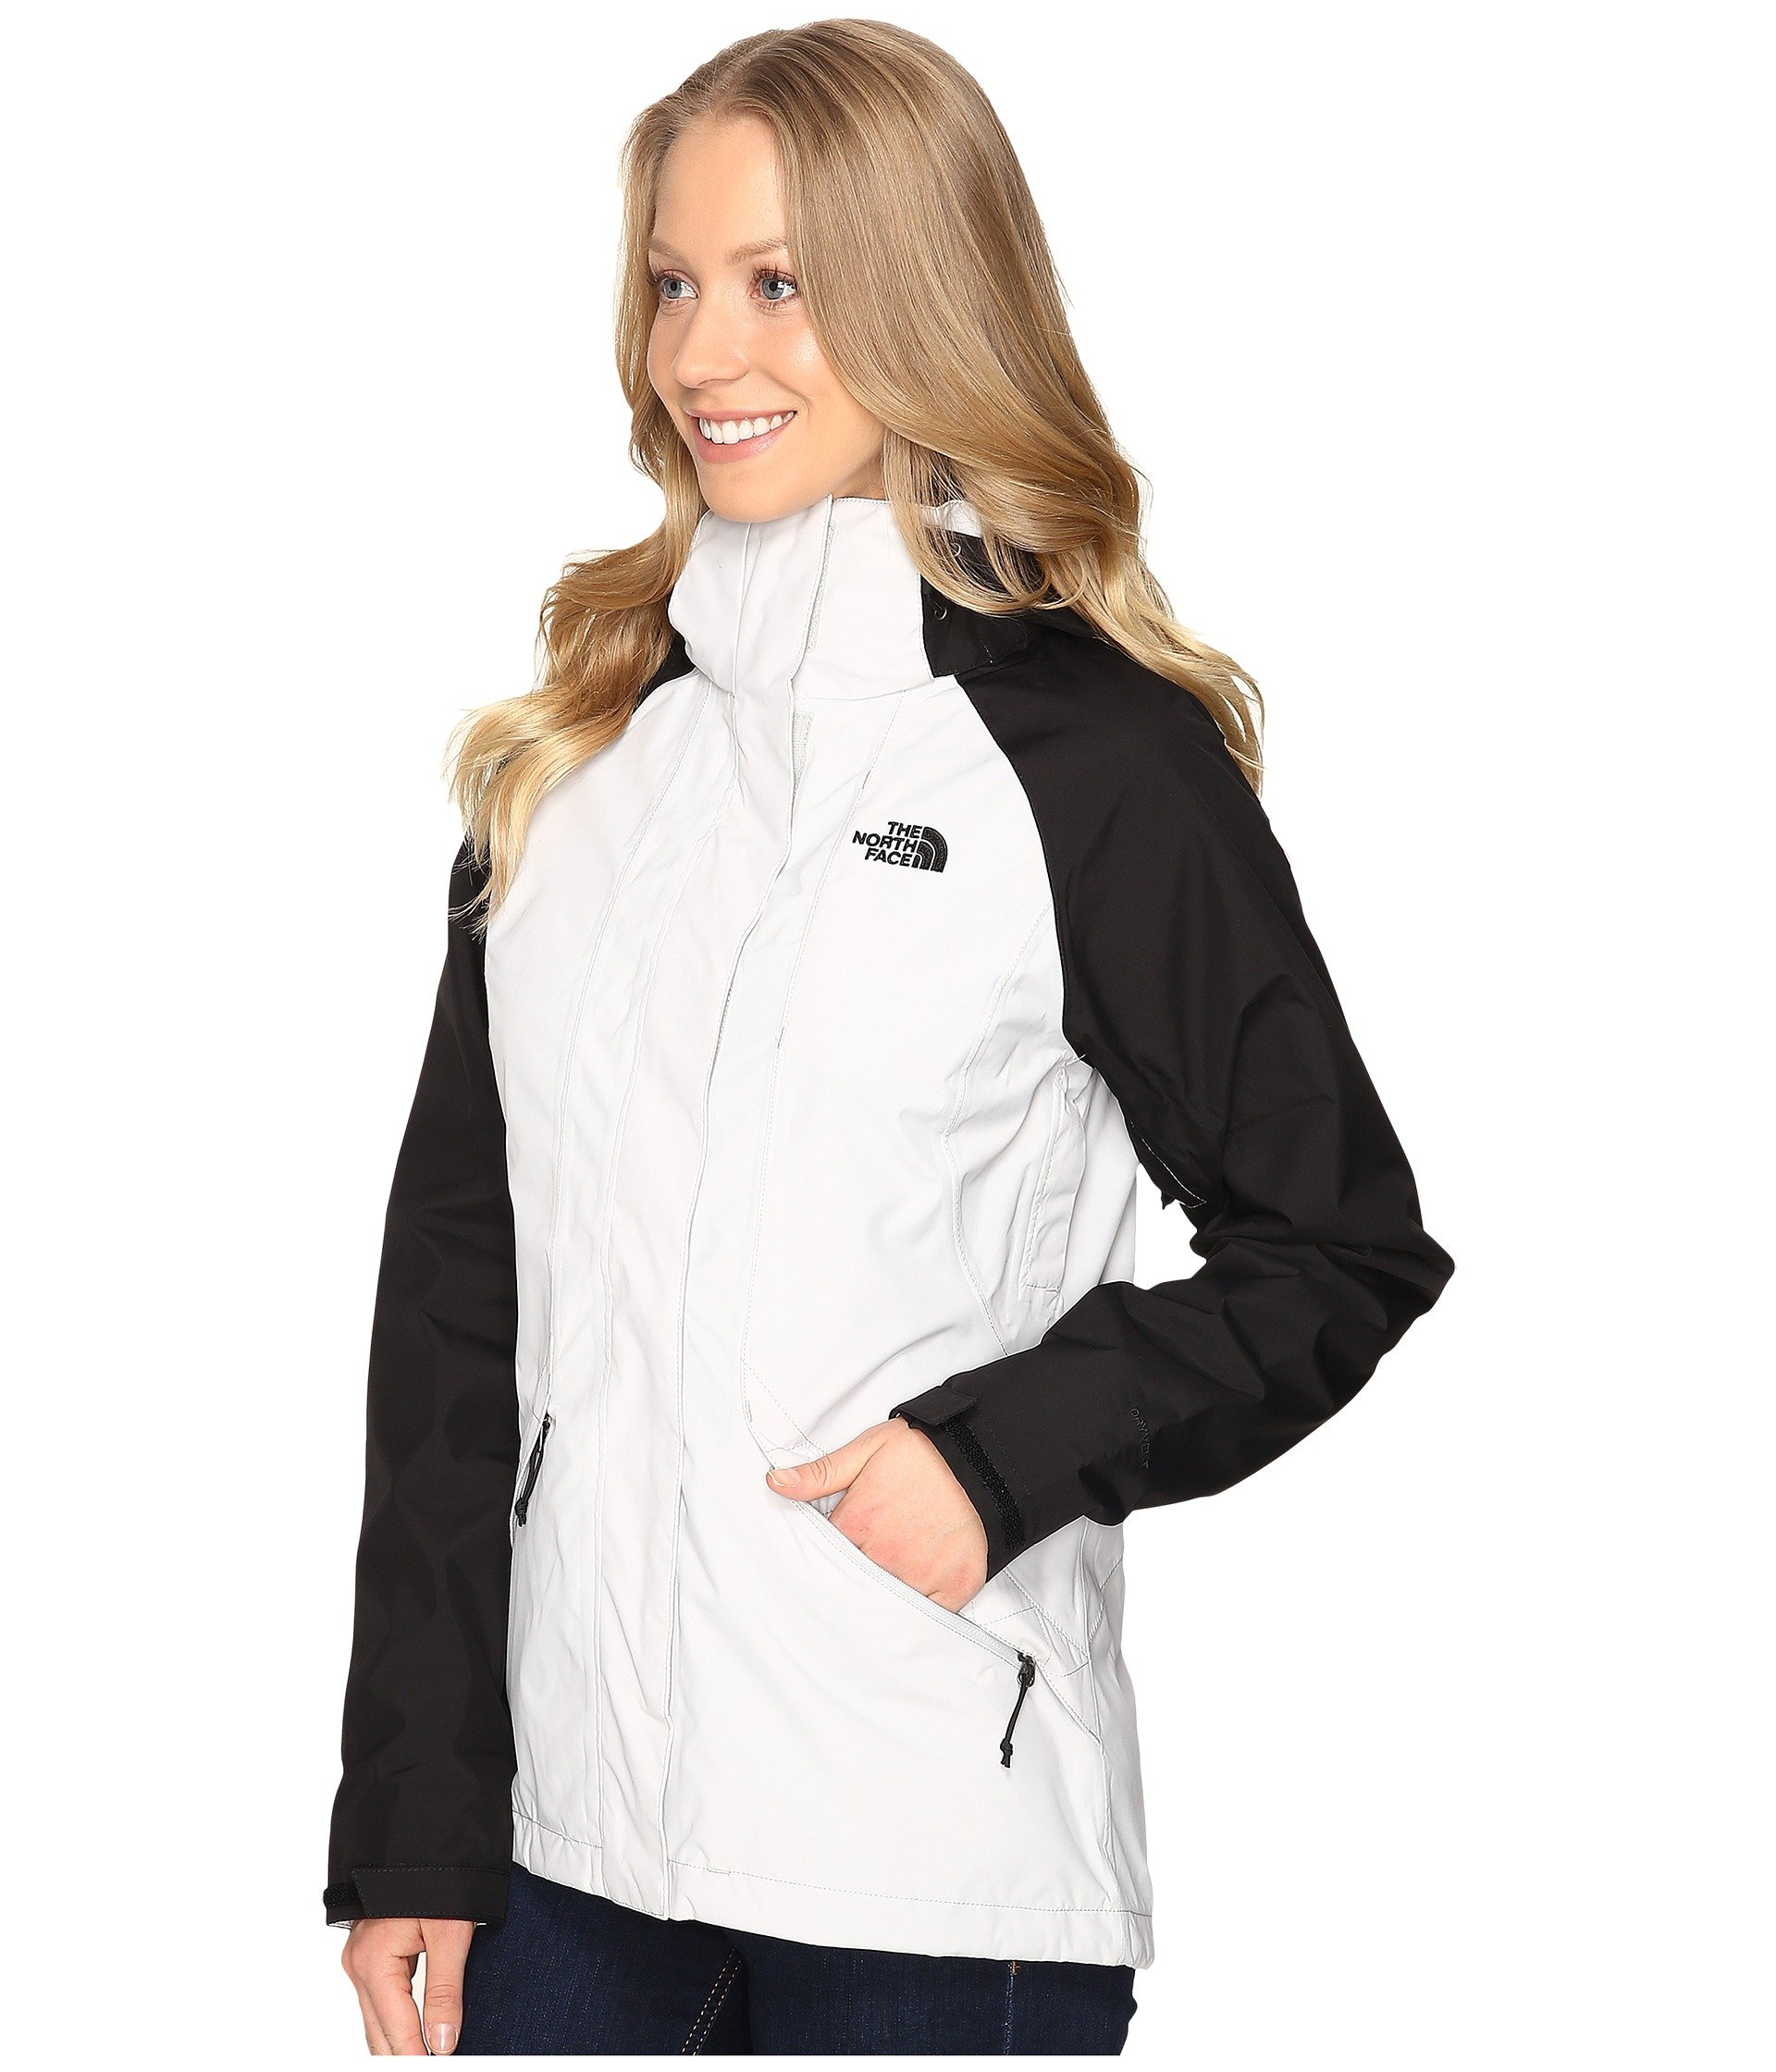 North Face Womens Boundary Triclimate Jacket - Large - Lunar Ice Grey/TNF Black by The North Face (Image #3)